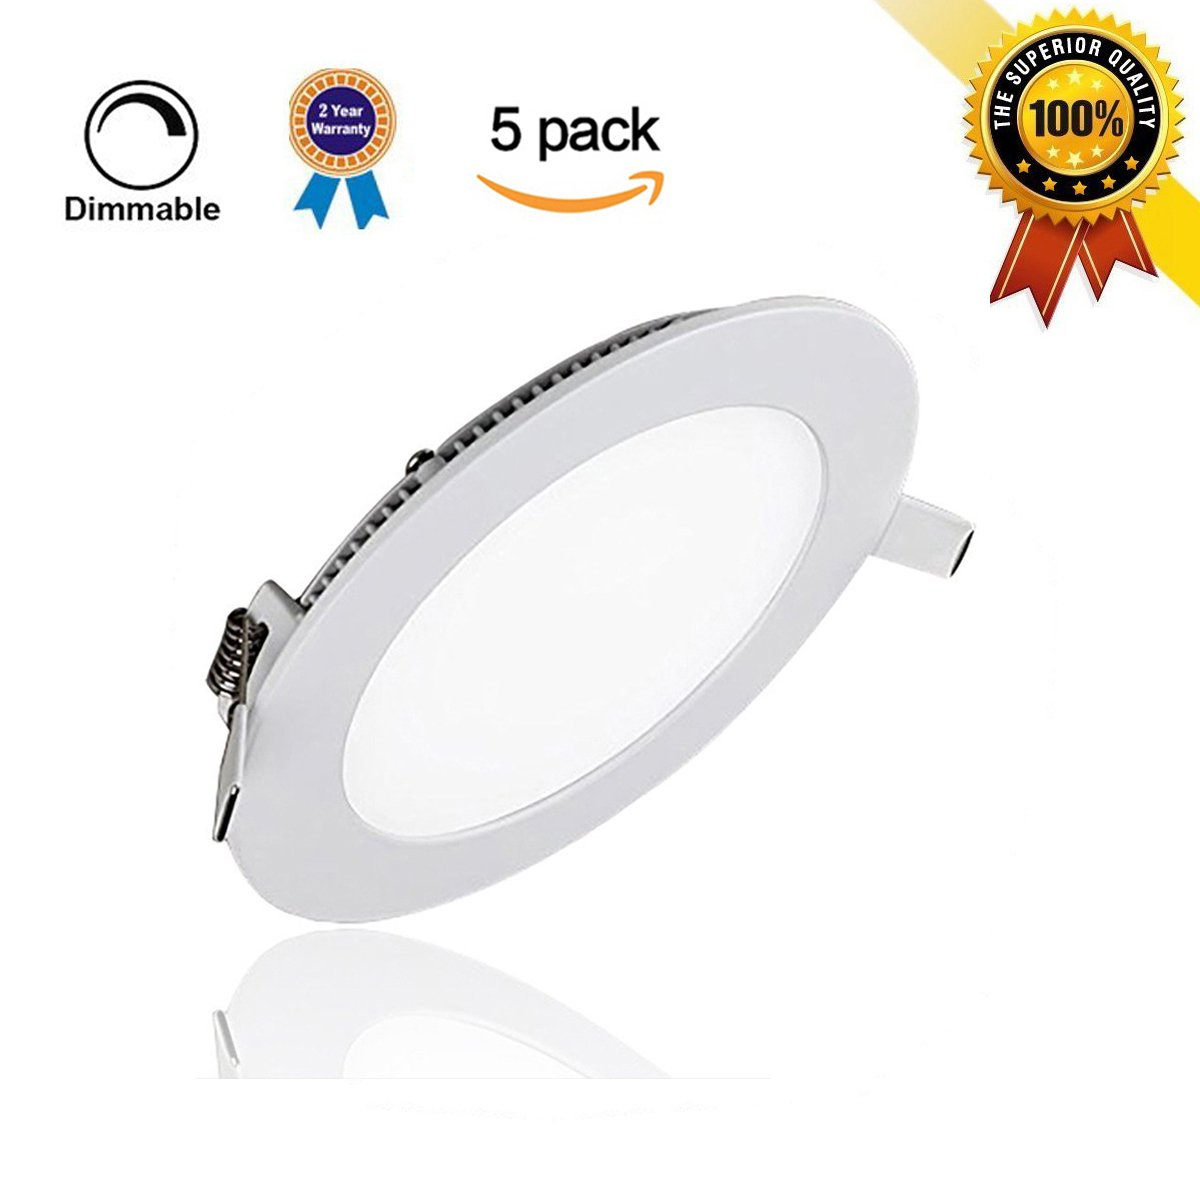 szwintec 5 Pack 6W LED Panel Light Fixtures, Dimmable Round Ultrathin LED Recessed Ceiling Light, 480lm, Cold White 5000K, Cut Hole 4.1 Inch, Downlight with 110V LED Driver